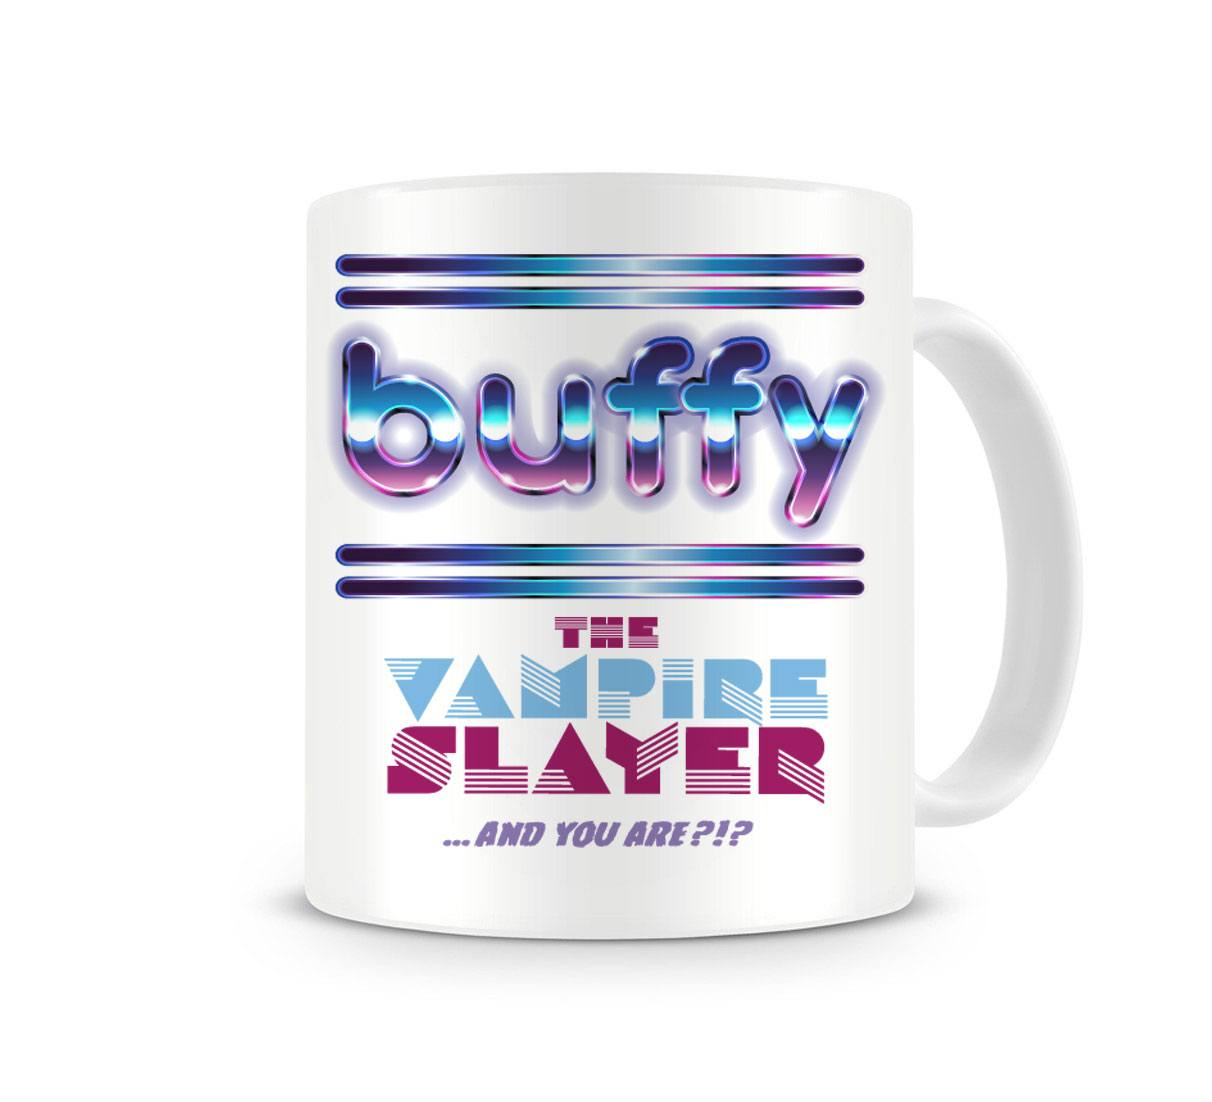 Buffy the Vampire Slayer Mug Retro TV